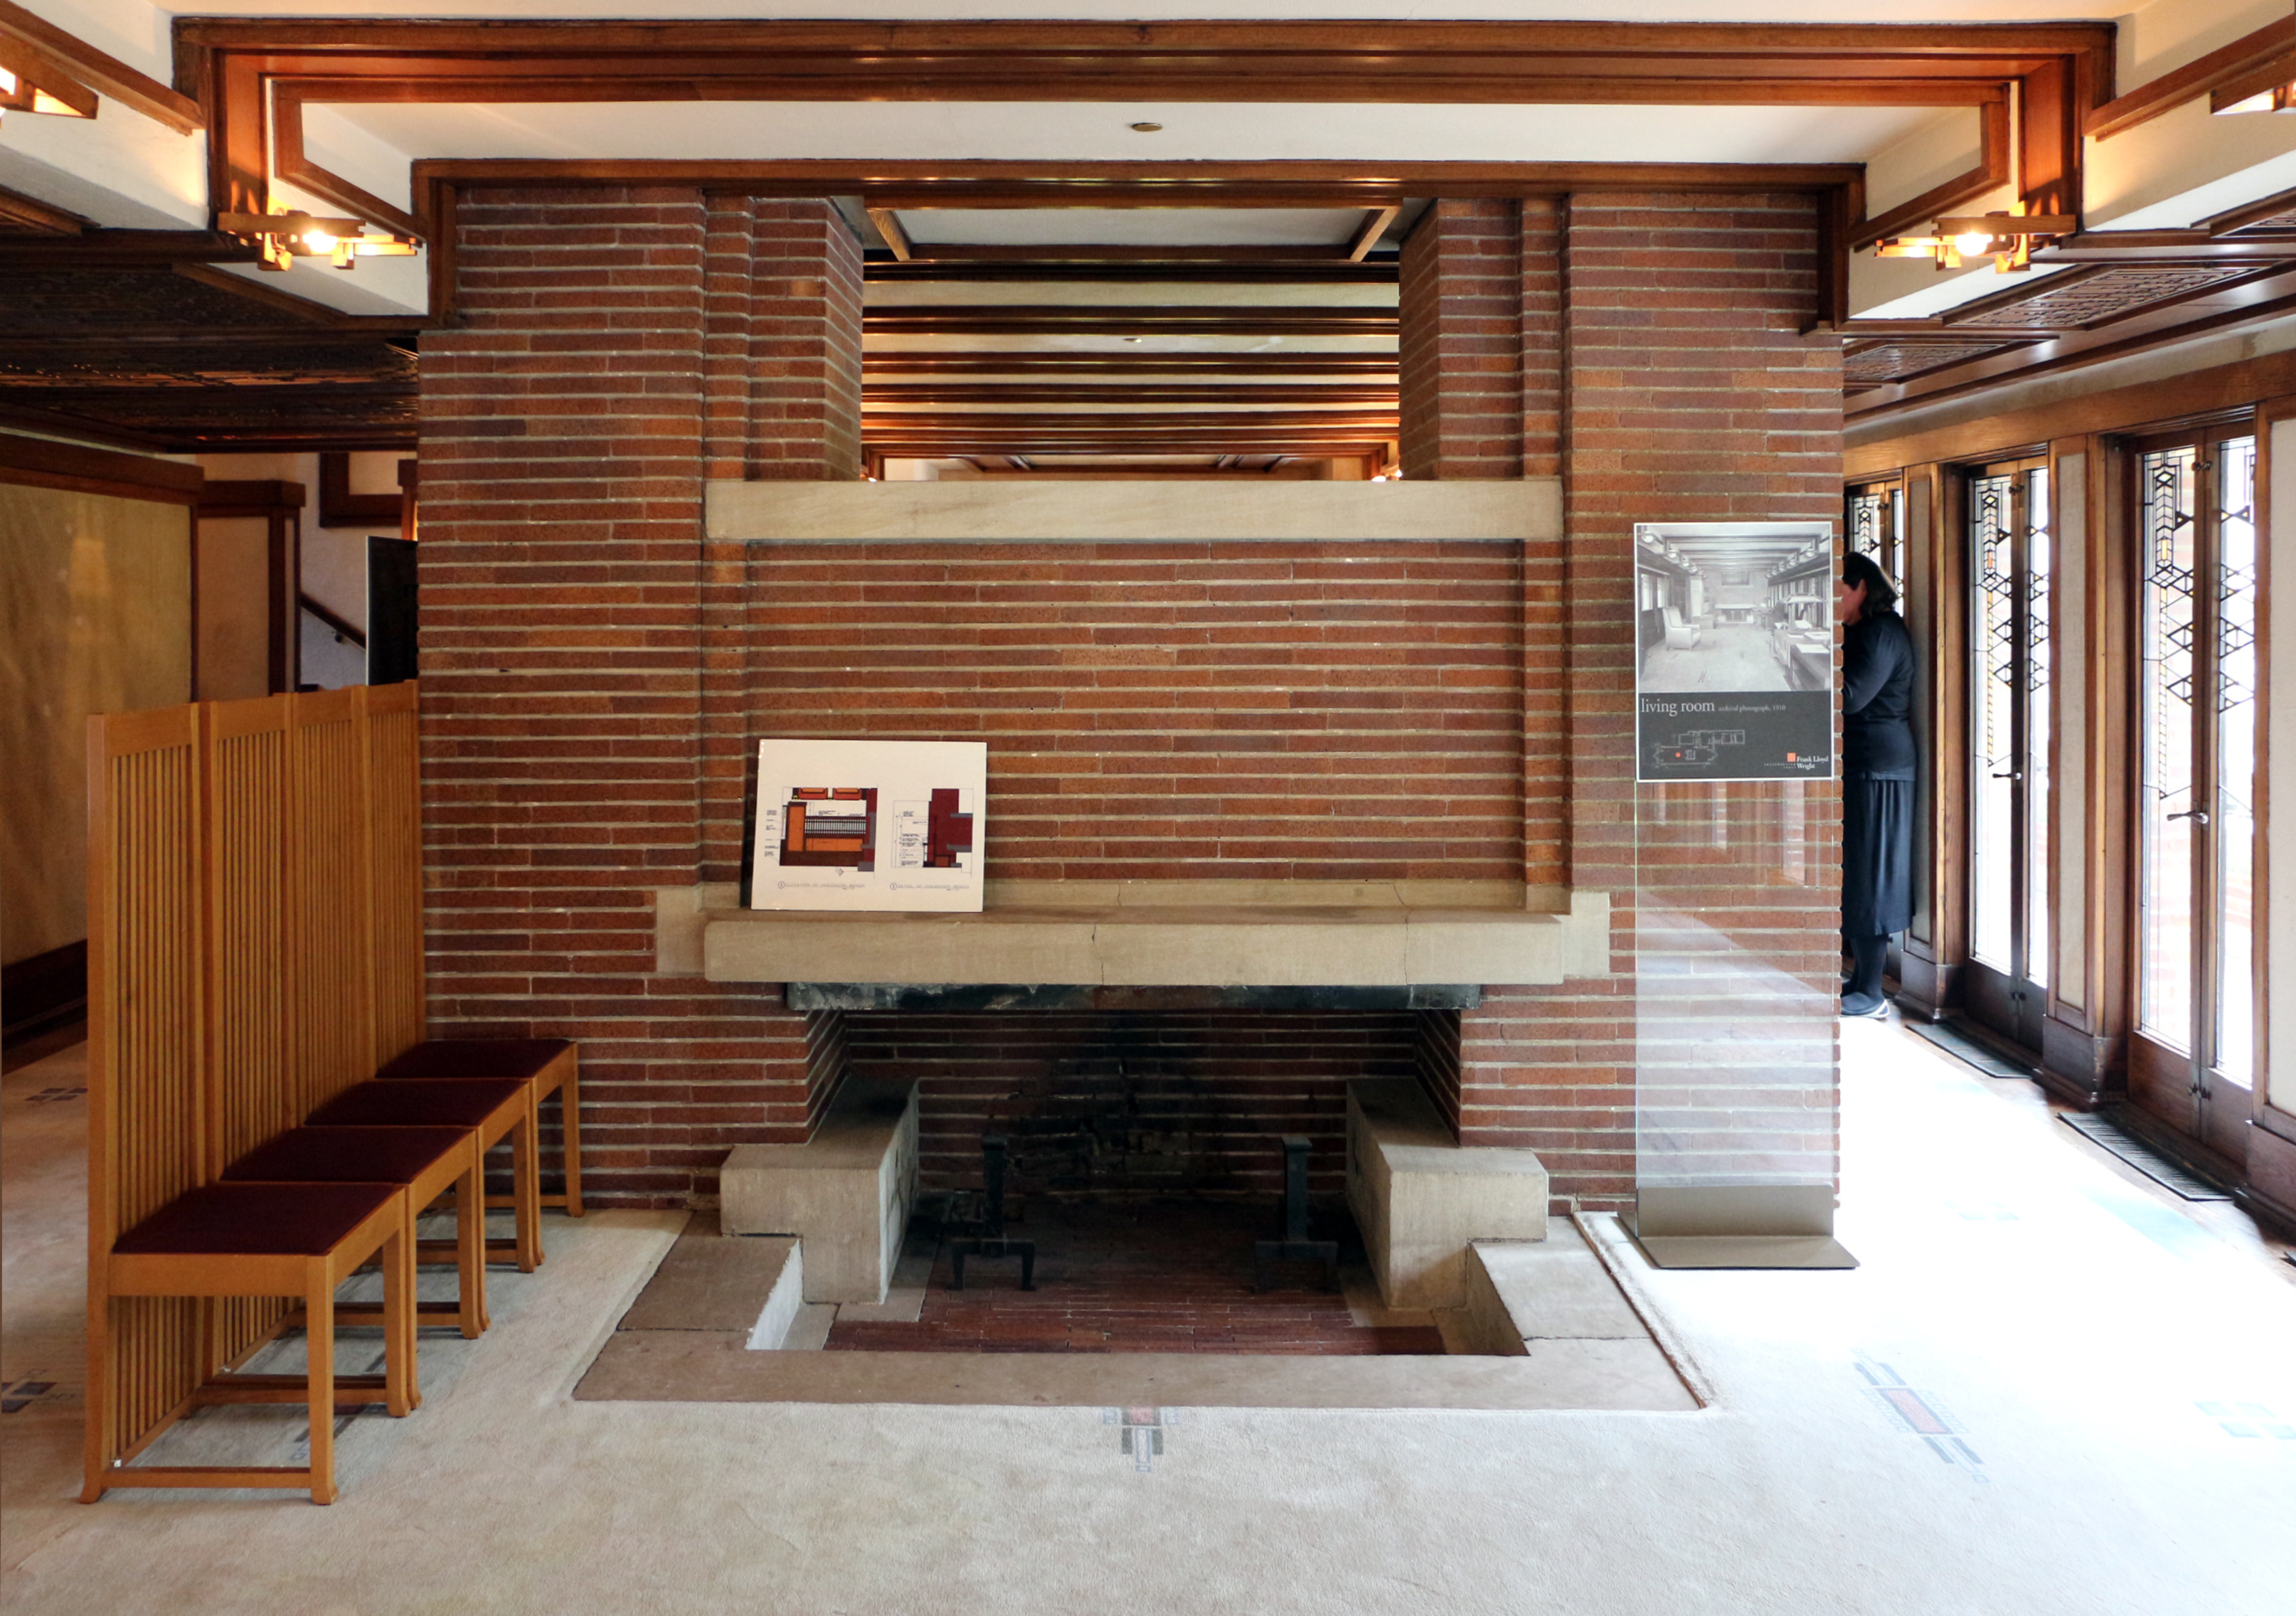 File:Chicago, robie house di frank lloyd wright, 1908-1910